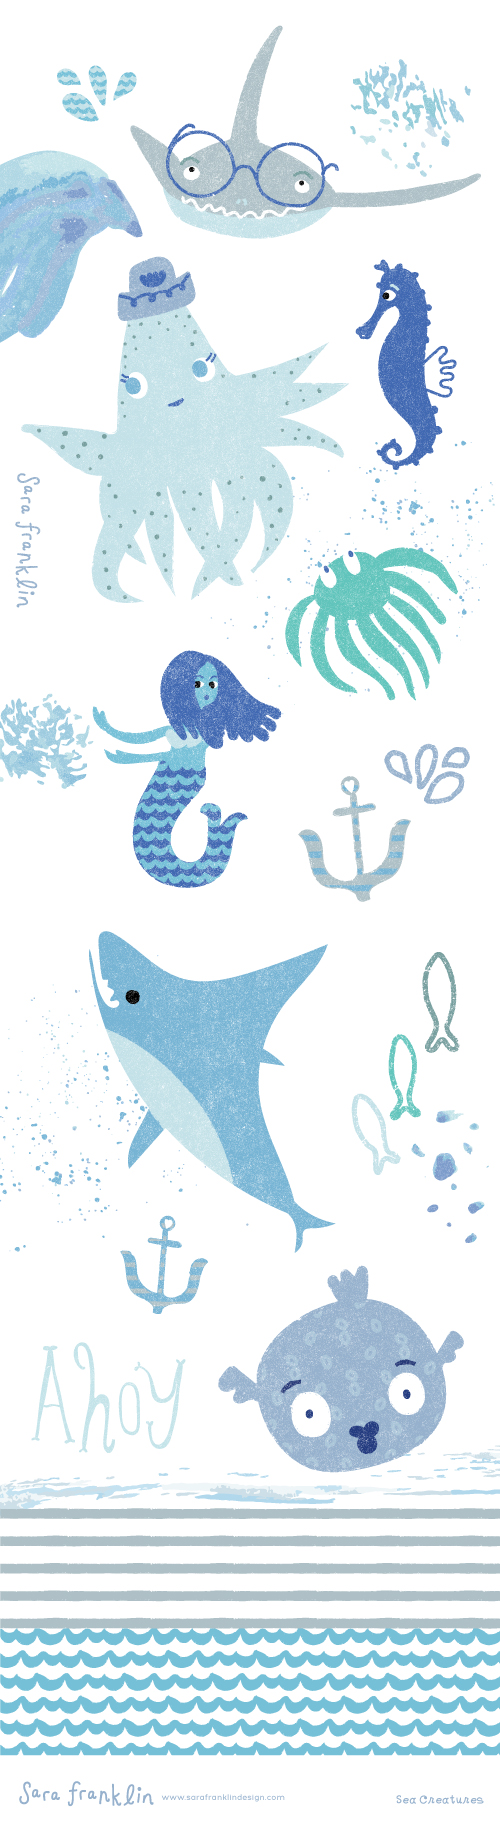 Sea Creatures / Sara Franklin / Surface Pattern Design / Kids Decor / Nautical Patterns / Art Licensing / Sea Life